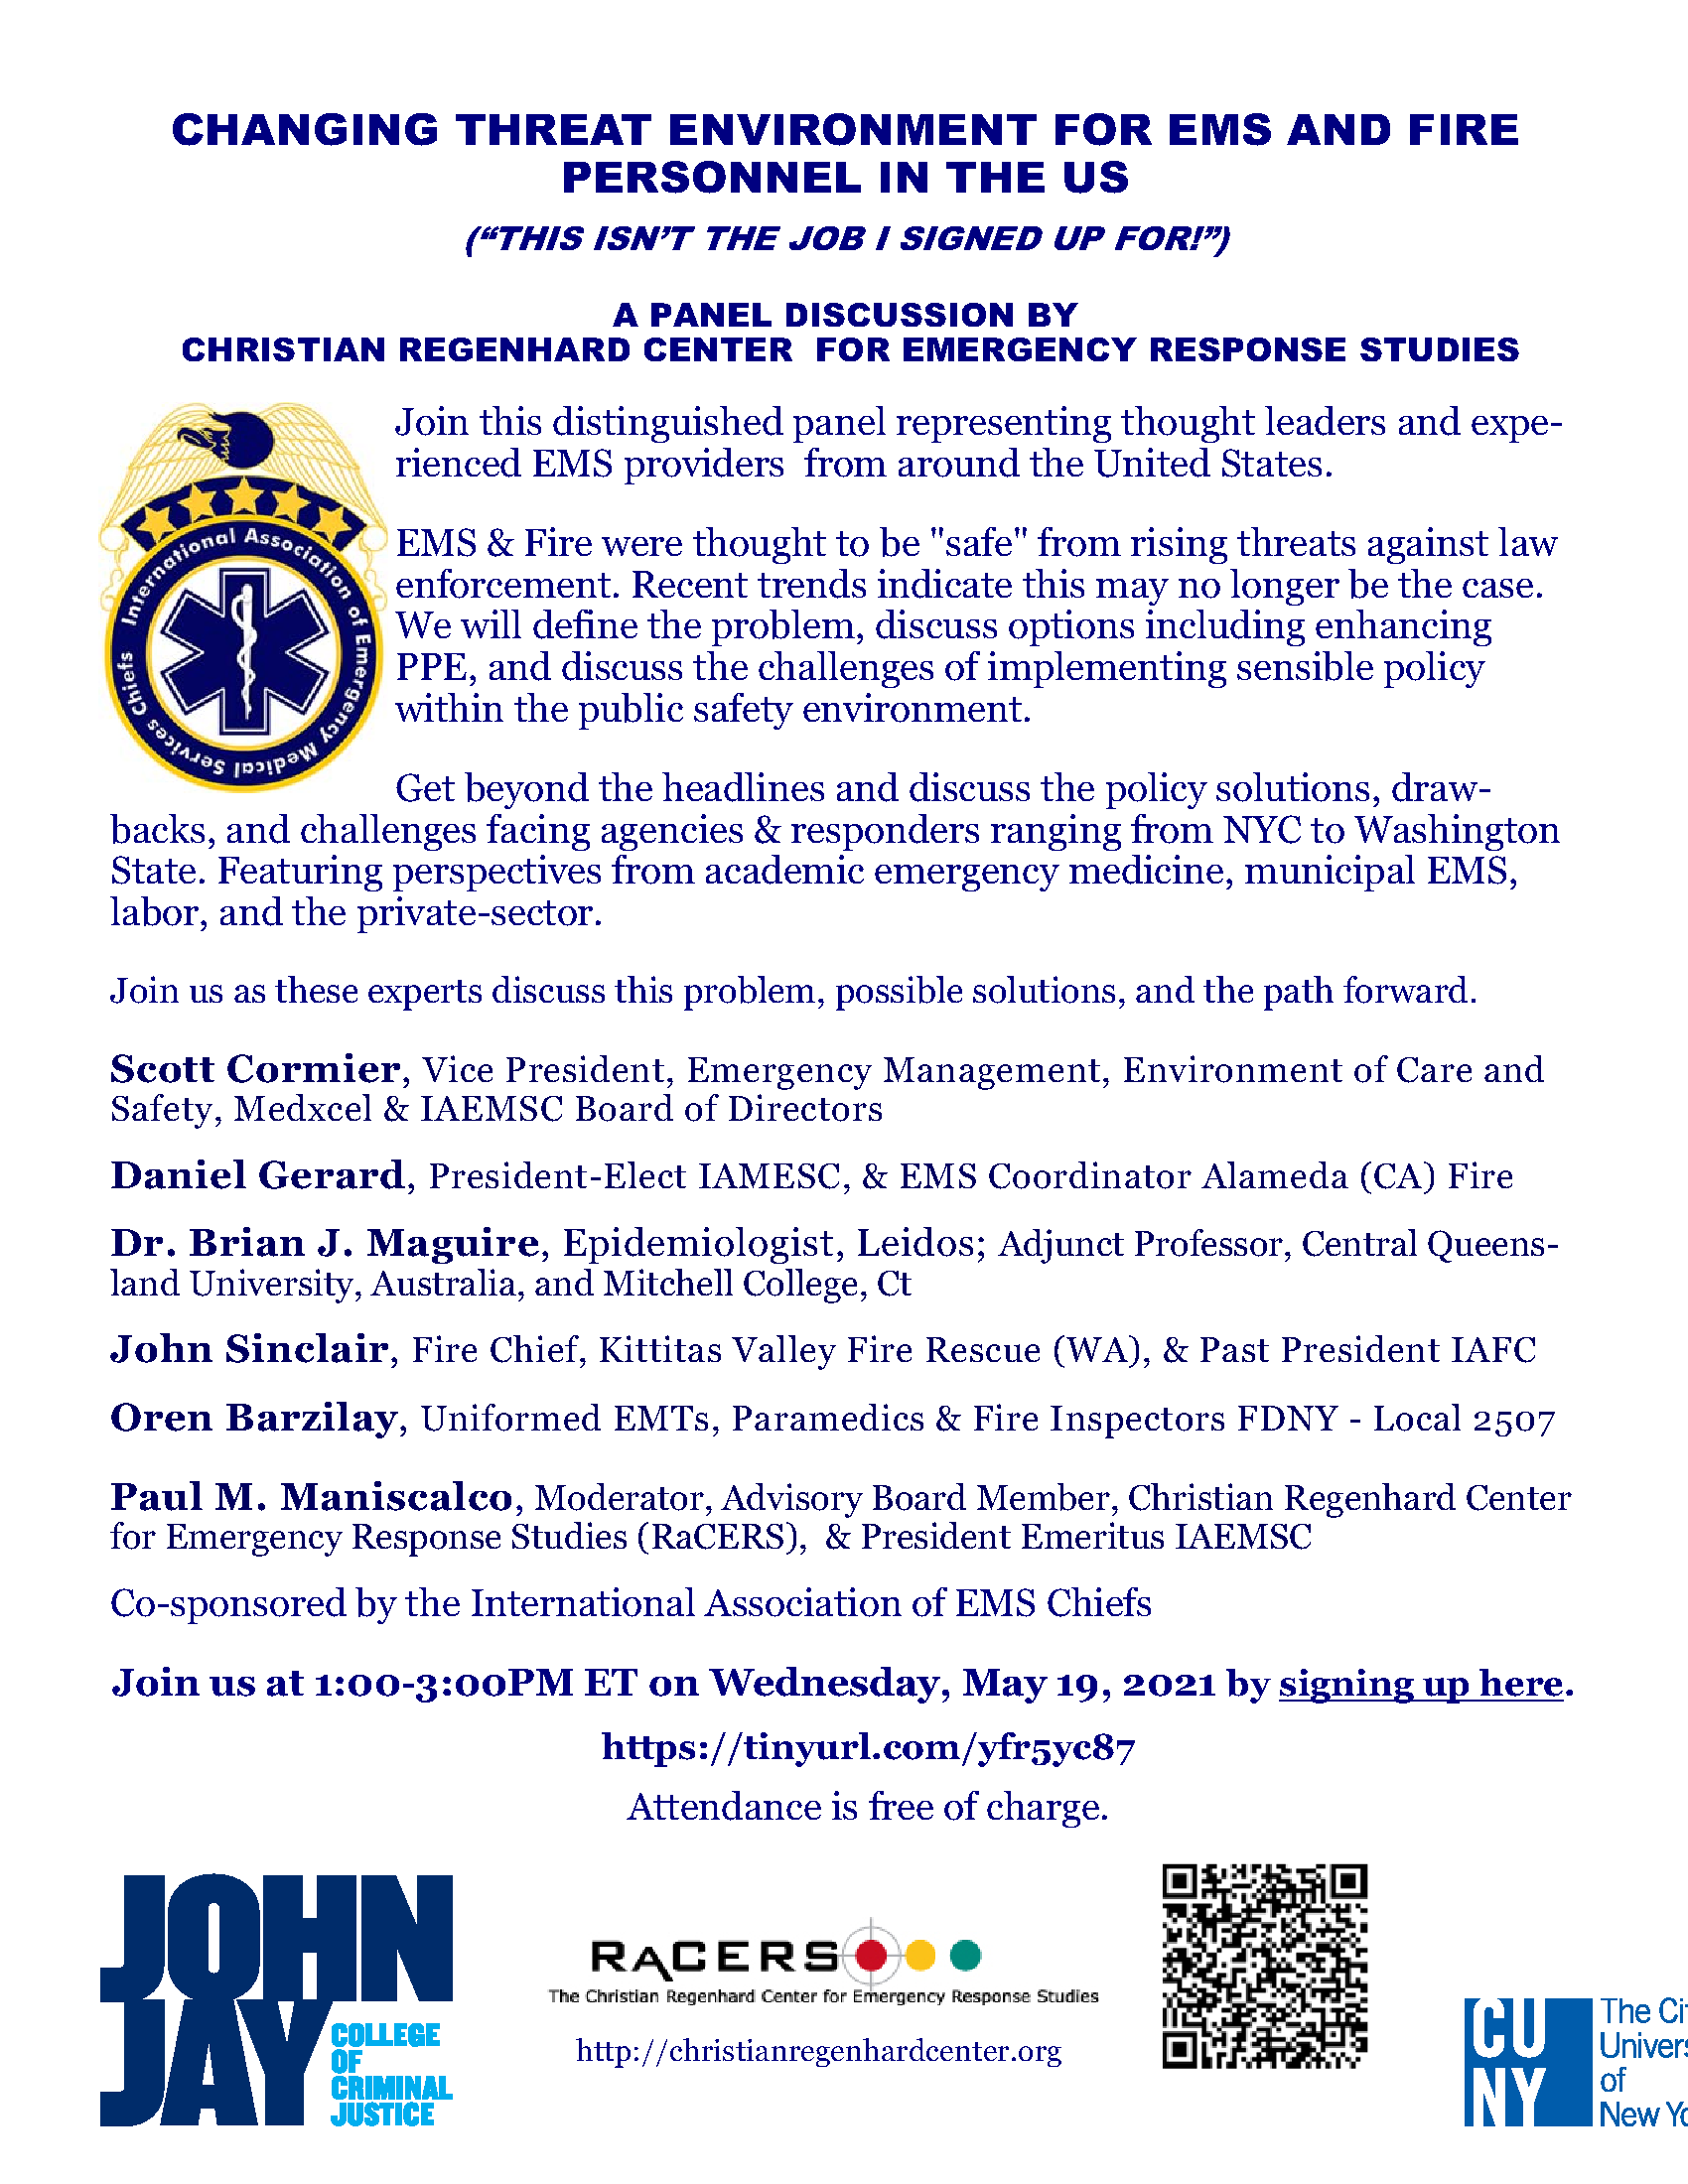 Changing EMS/Fire Threat Environment Panel Discussion 5/19